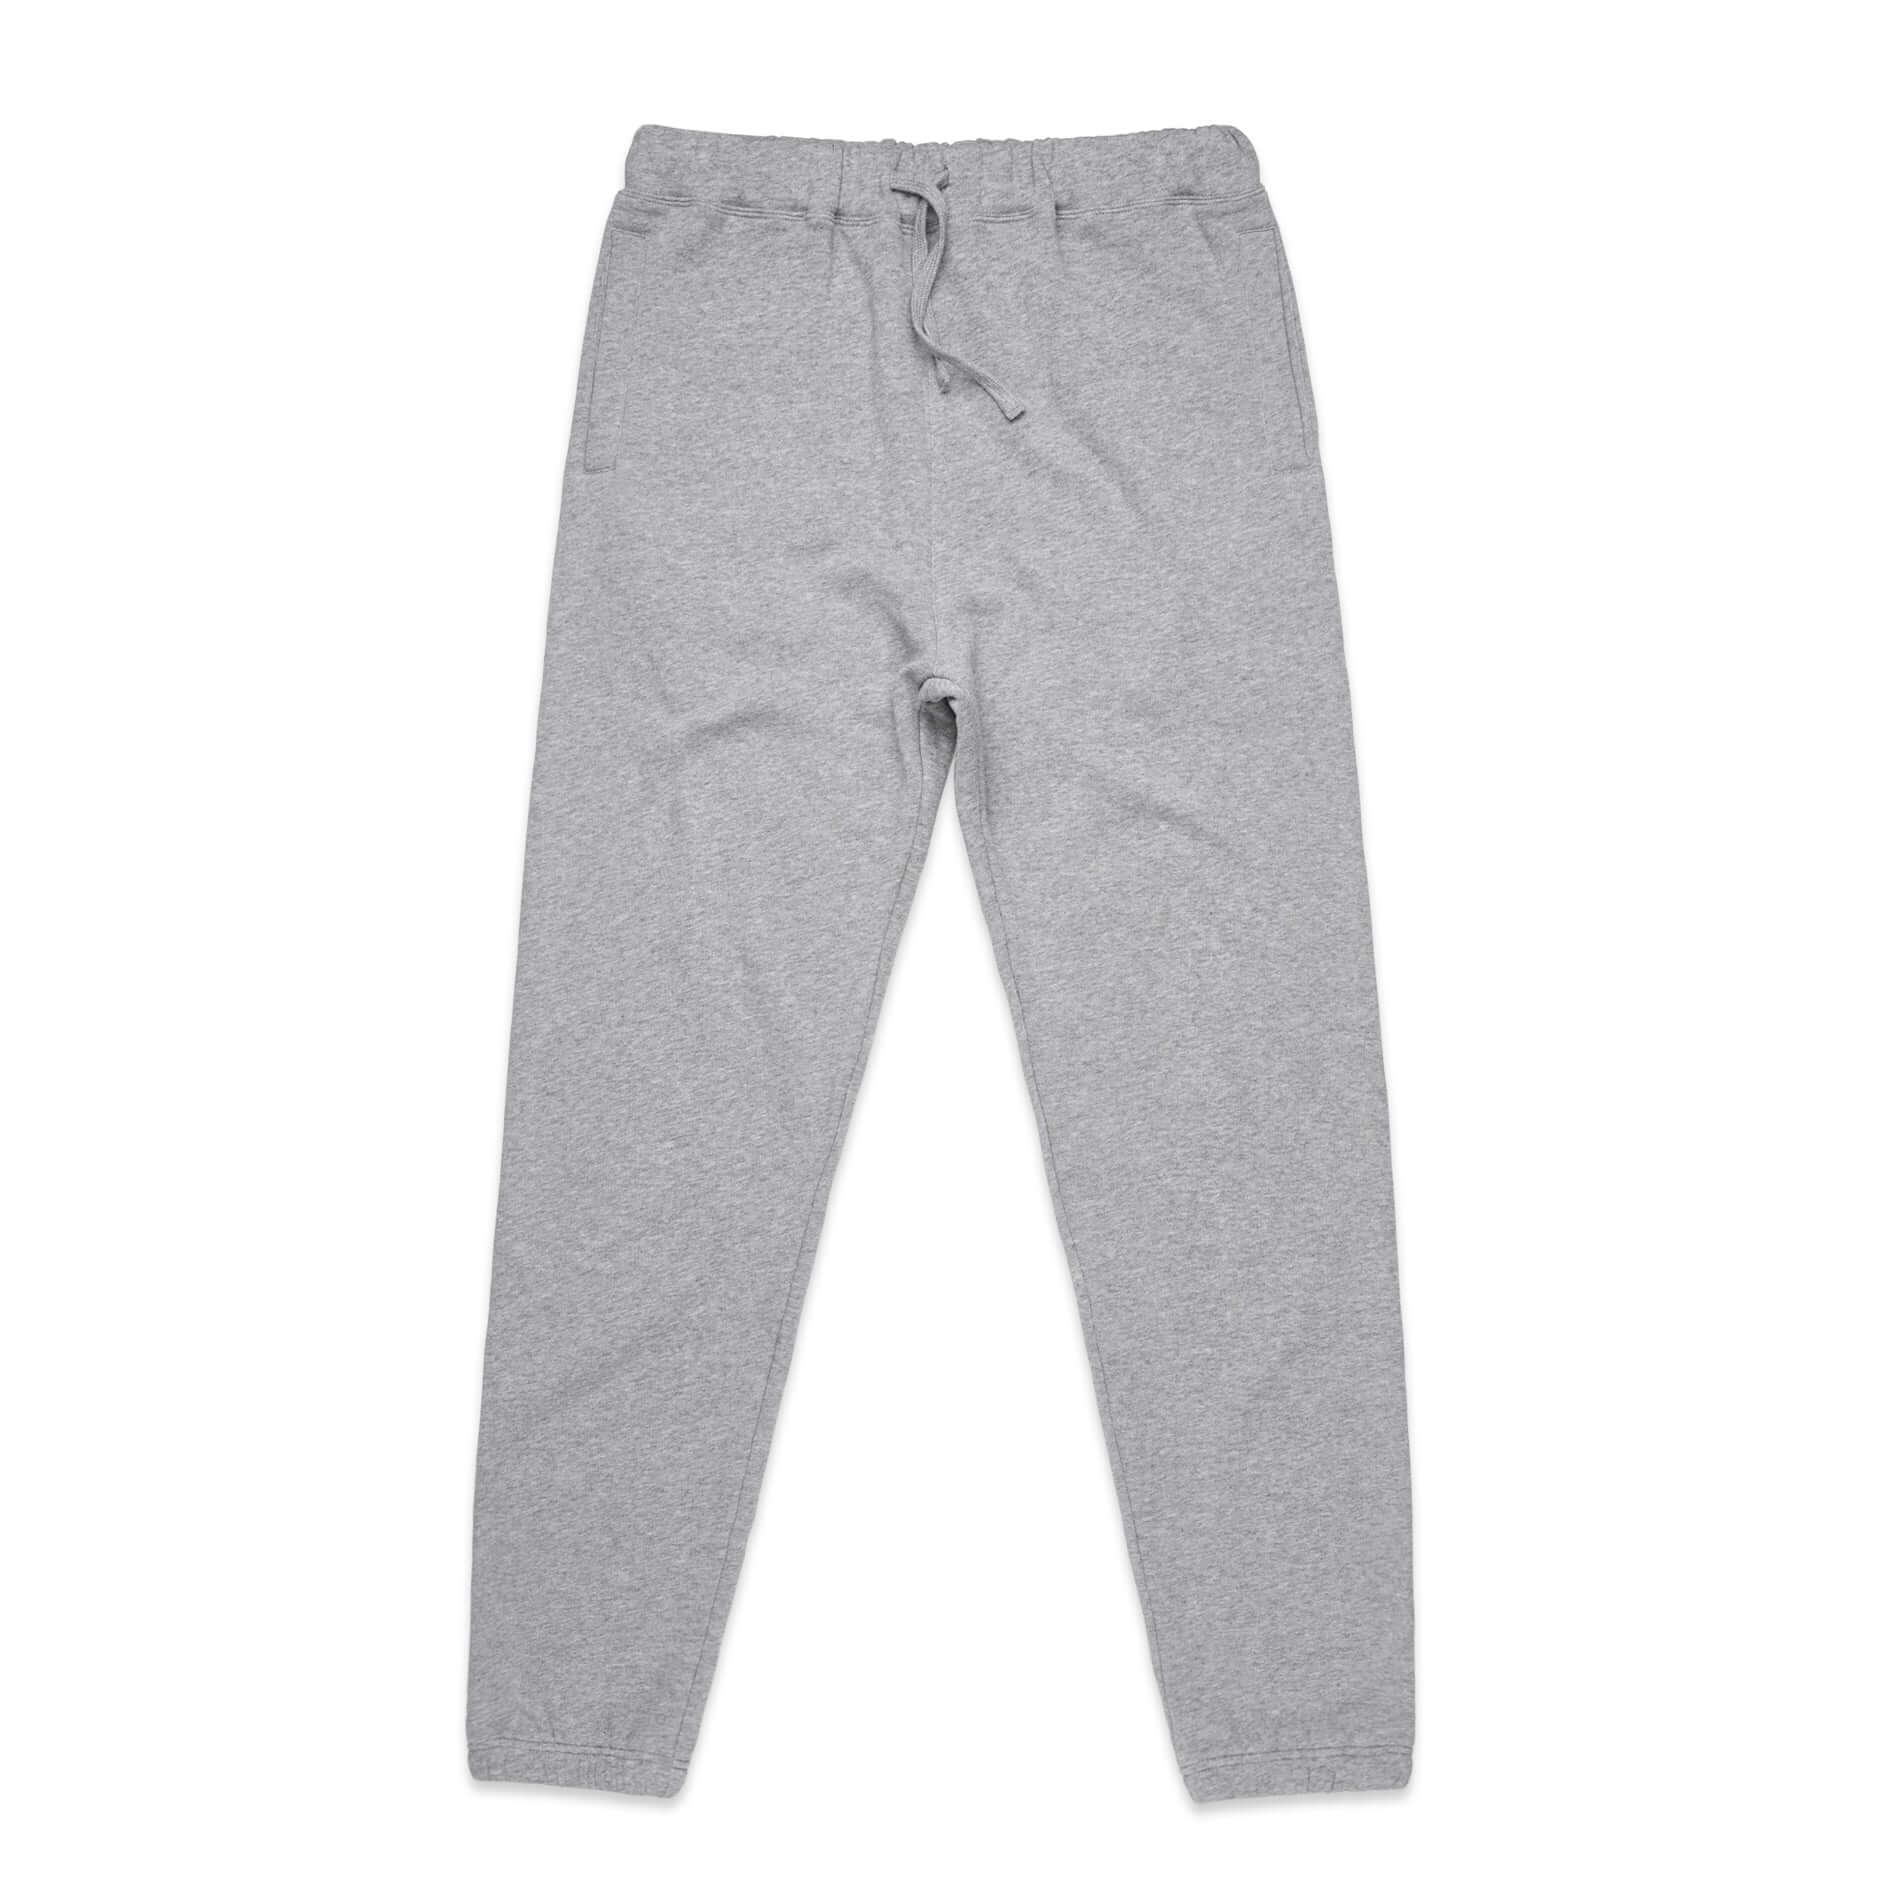 AS Colour SURPLUS TRACK PANT - Grey Marle